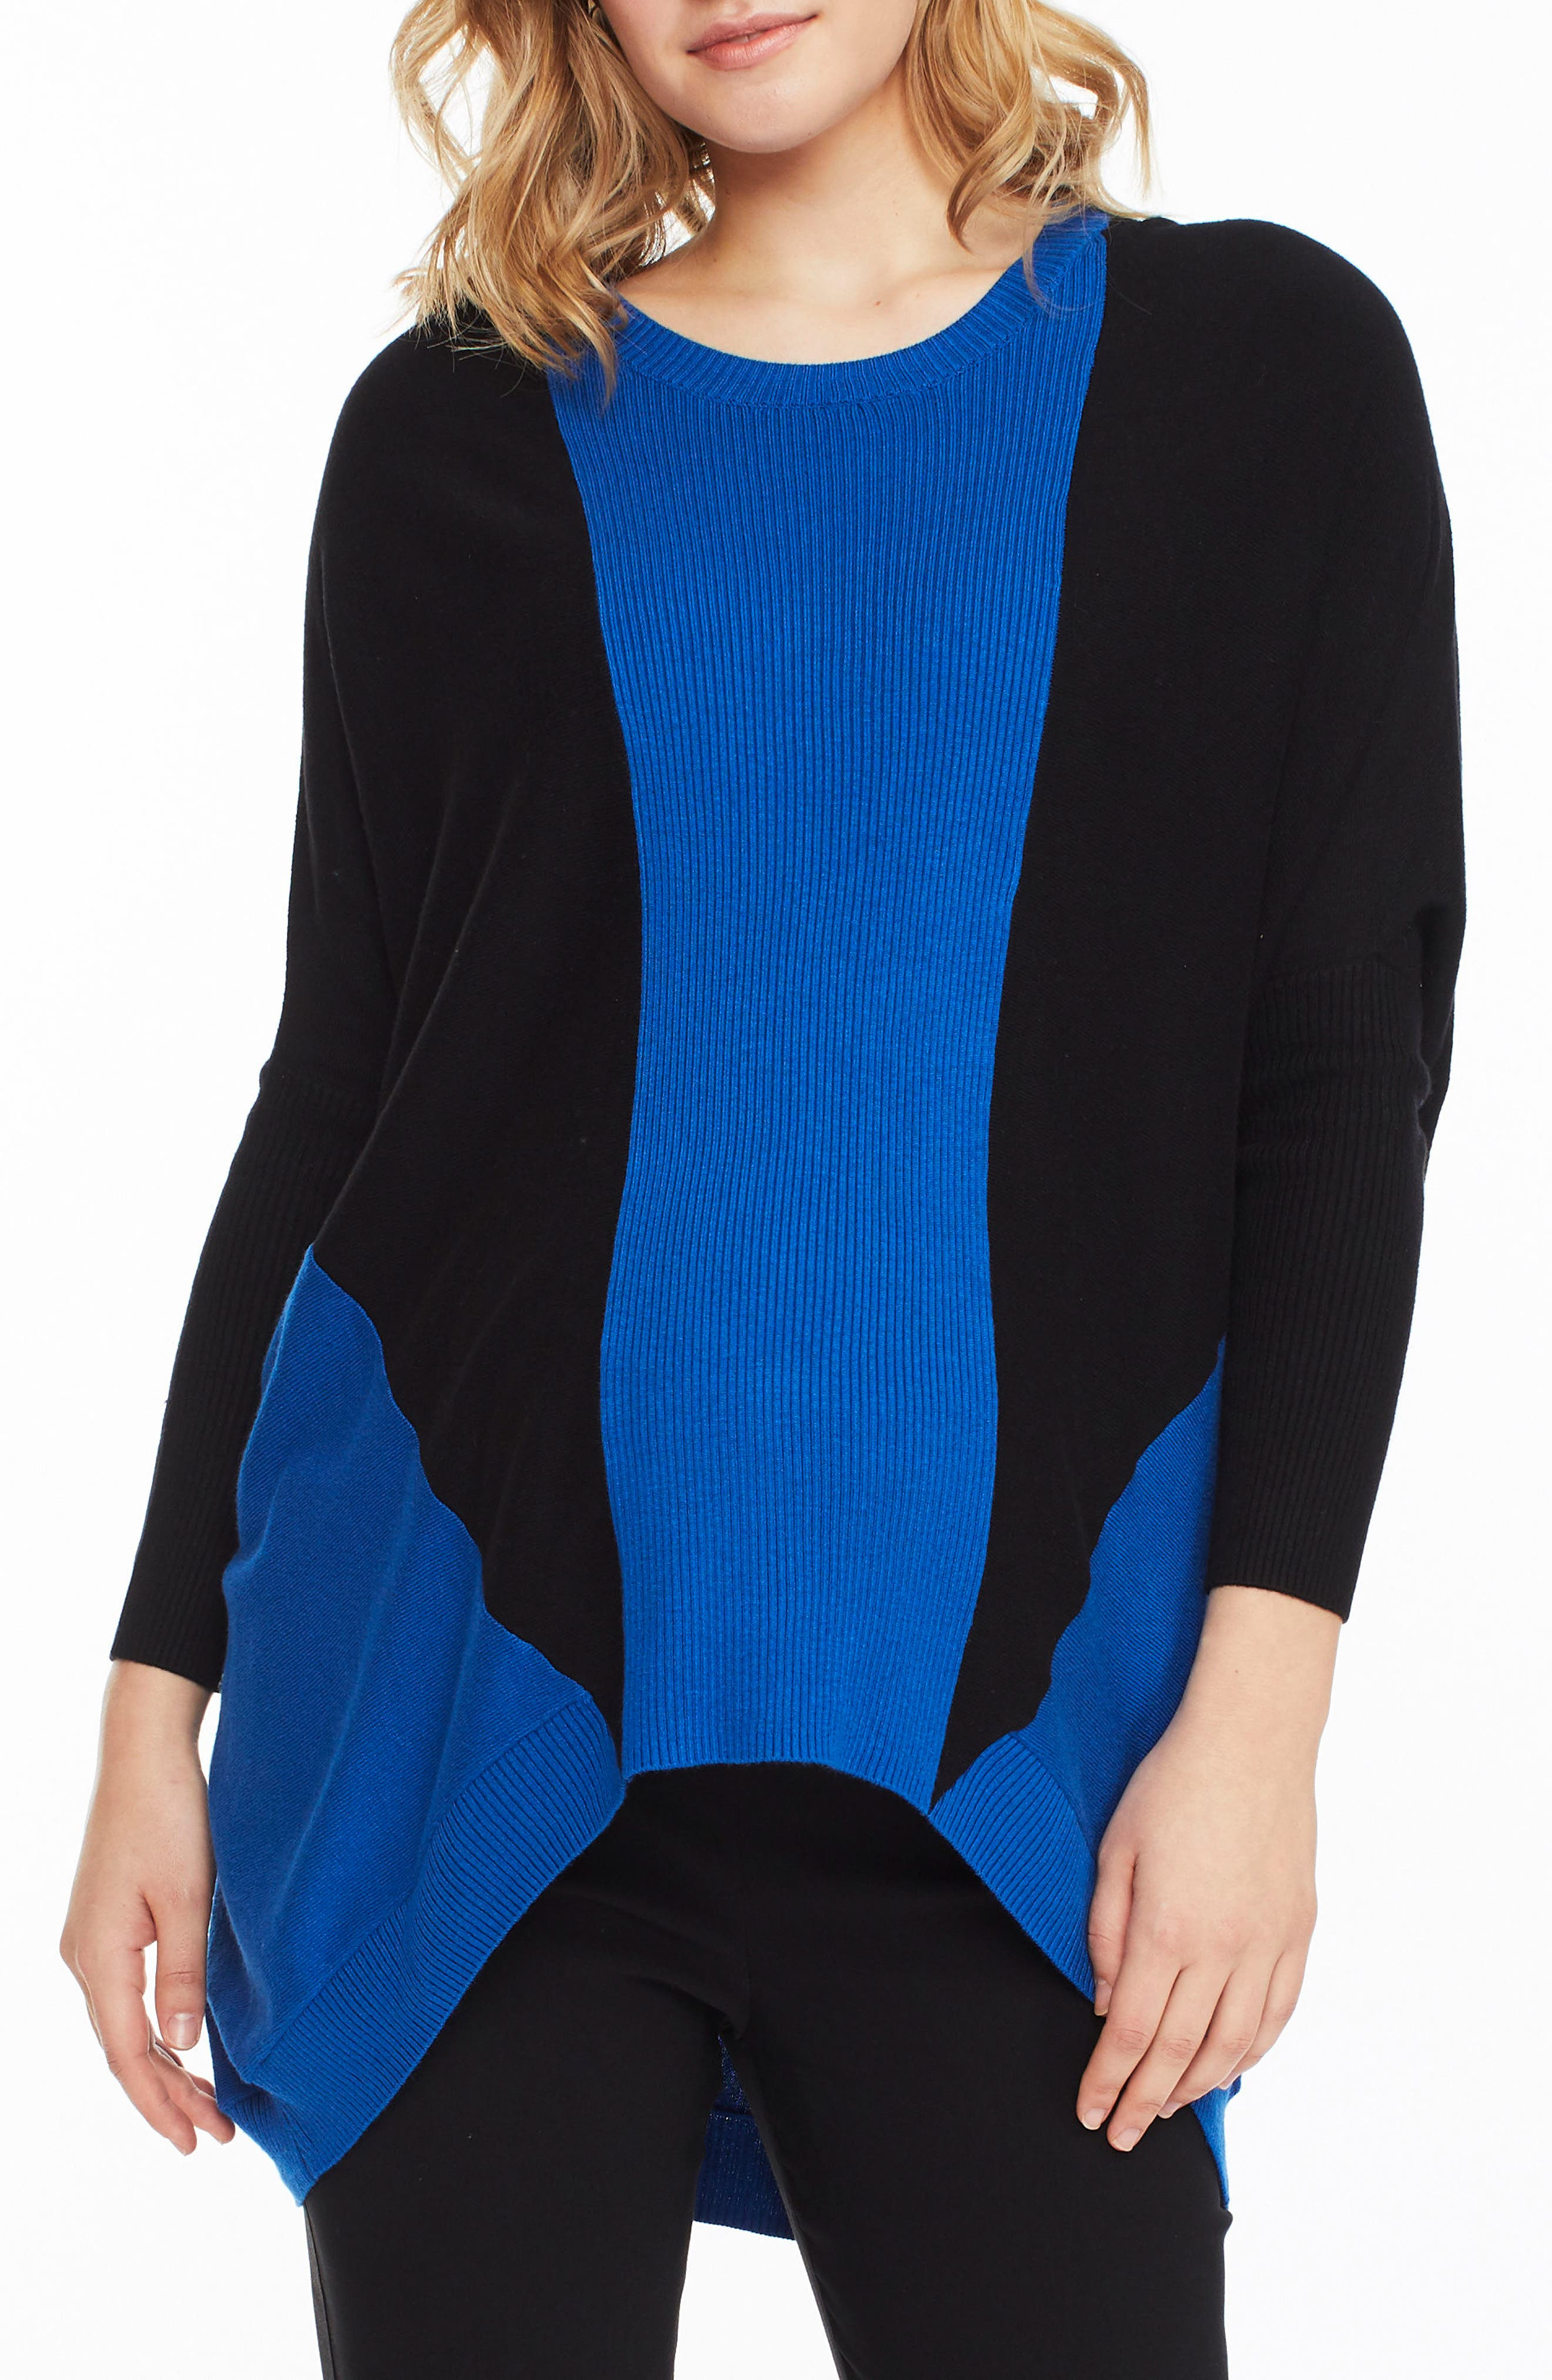 Hazel Colorblock Maternity Sweater,                         Main,                         color, INDIGO / BLACK